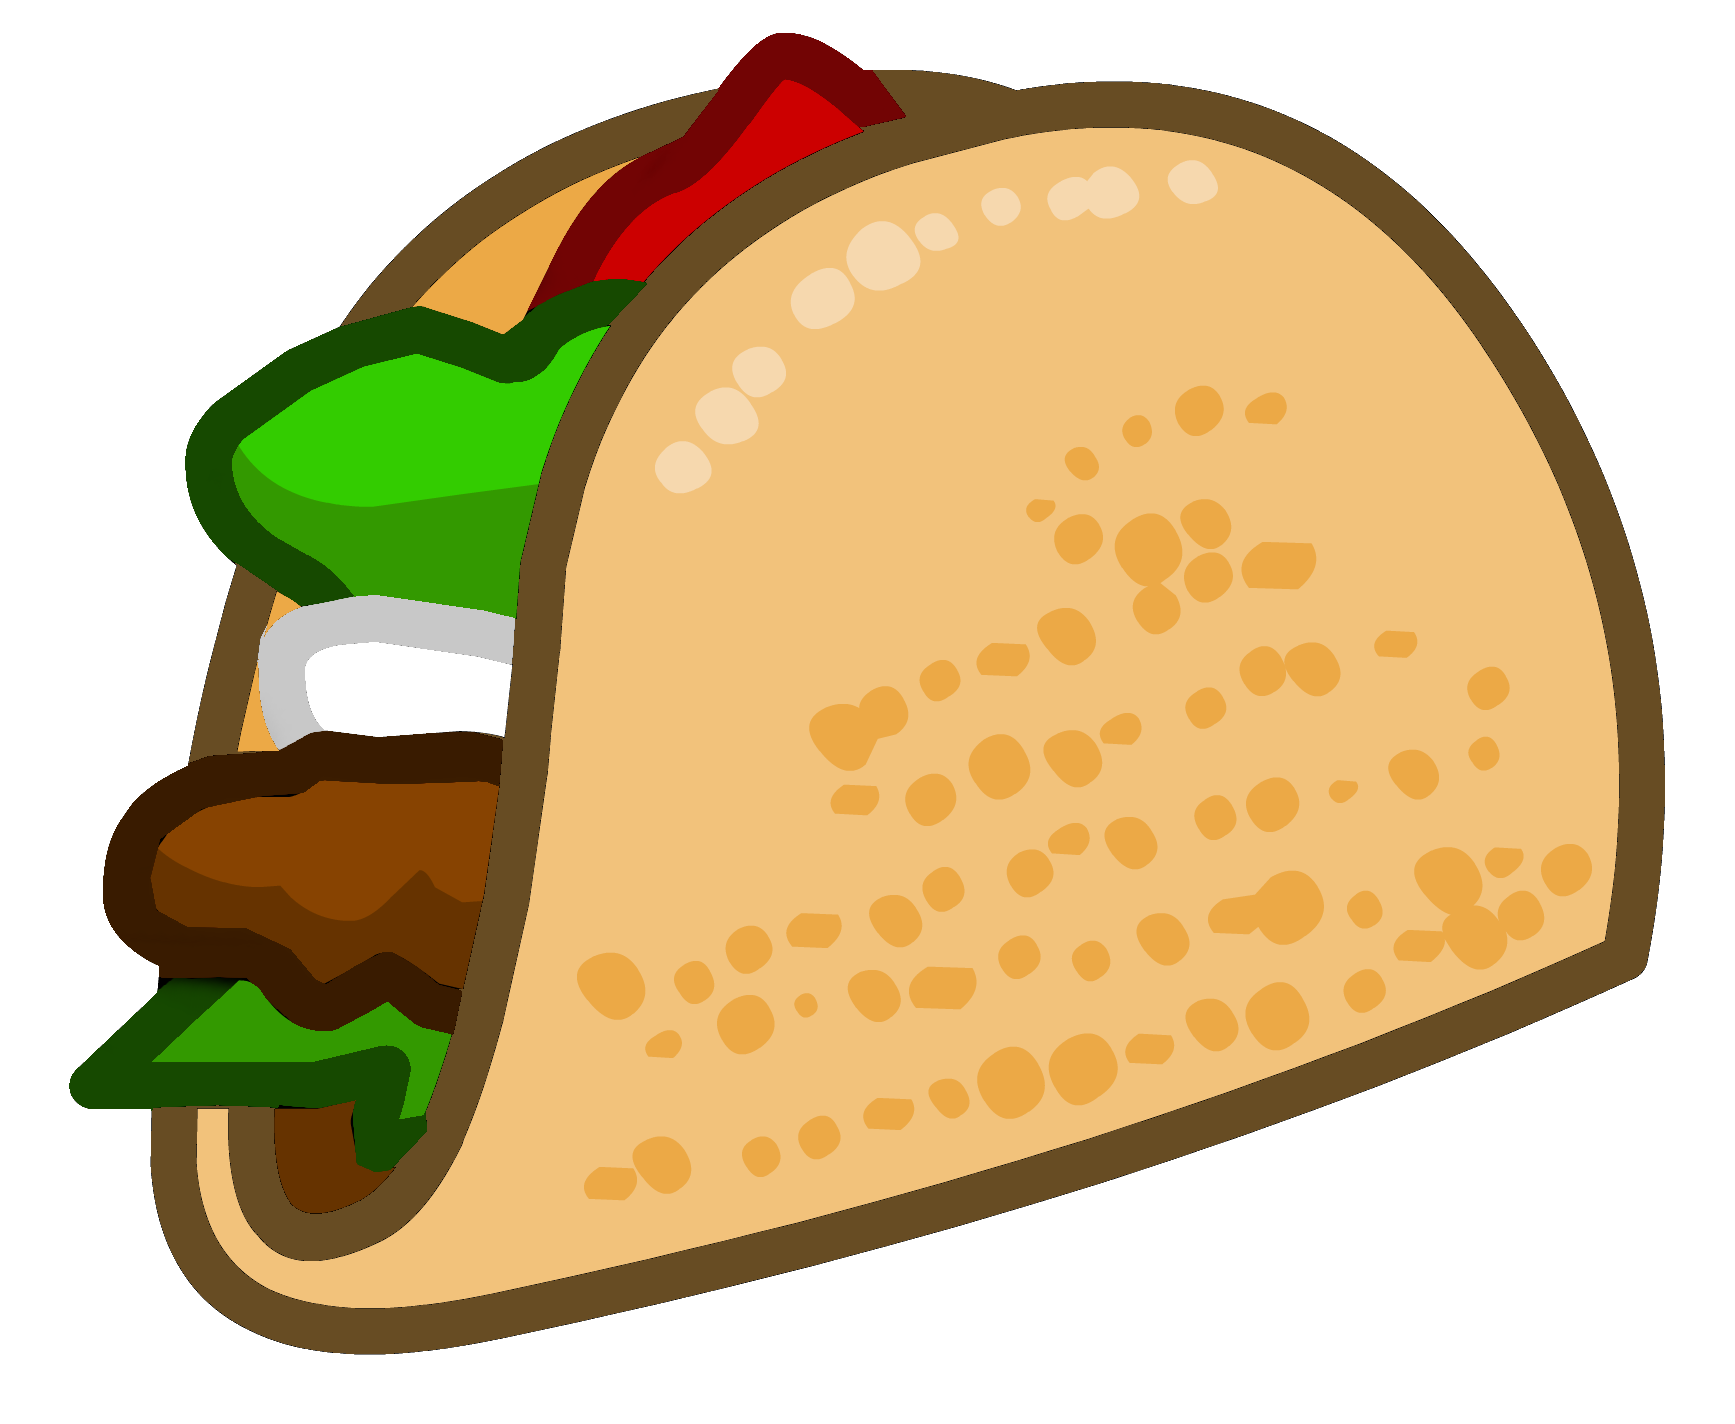 Download Picture For Tacos Hd Photos Clipart PNG Free.